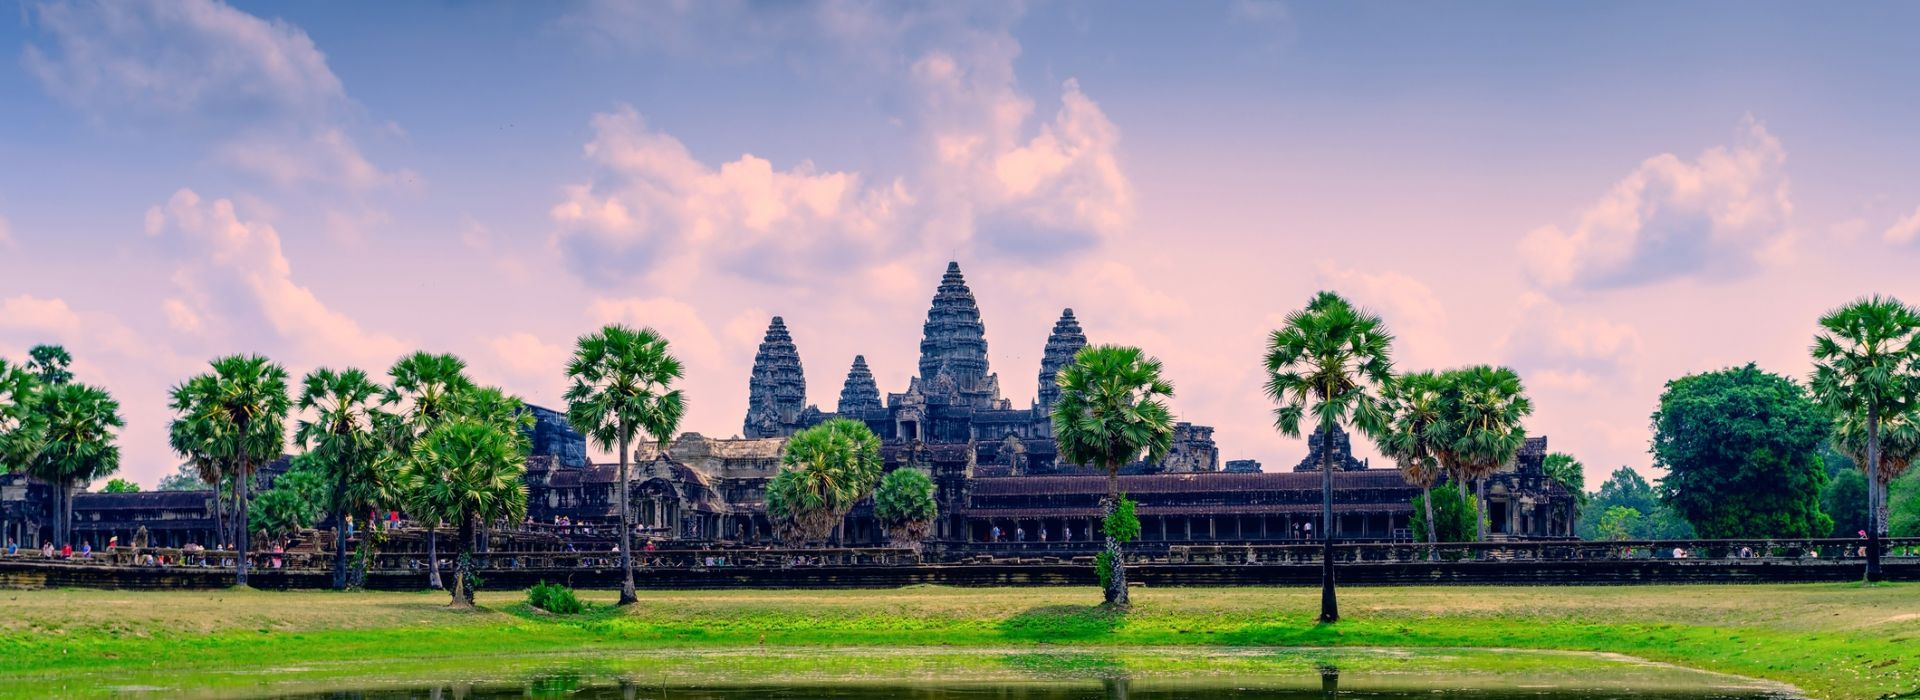 Beaches Tours in Siem Reap